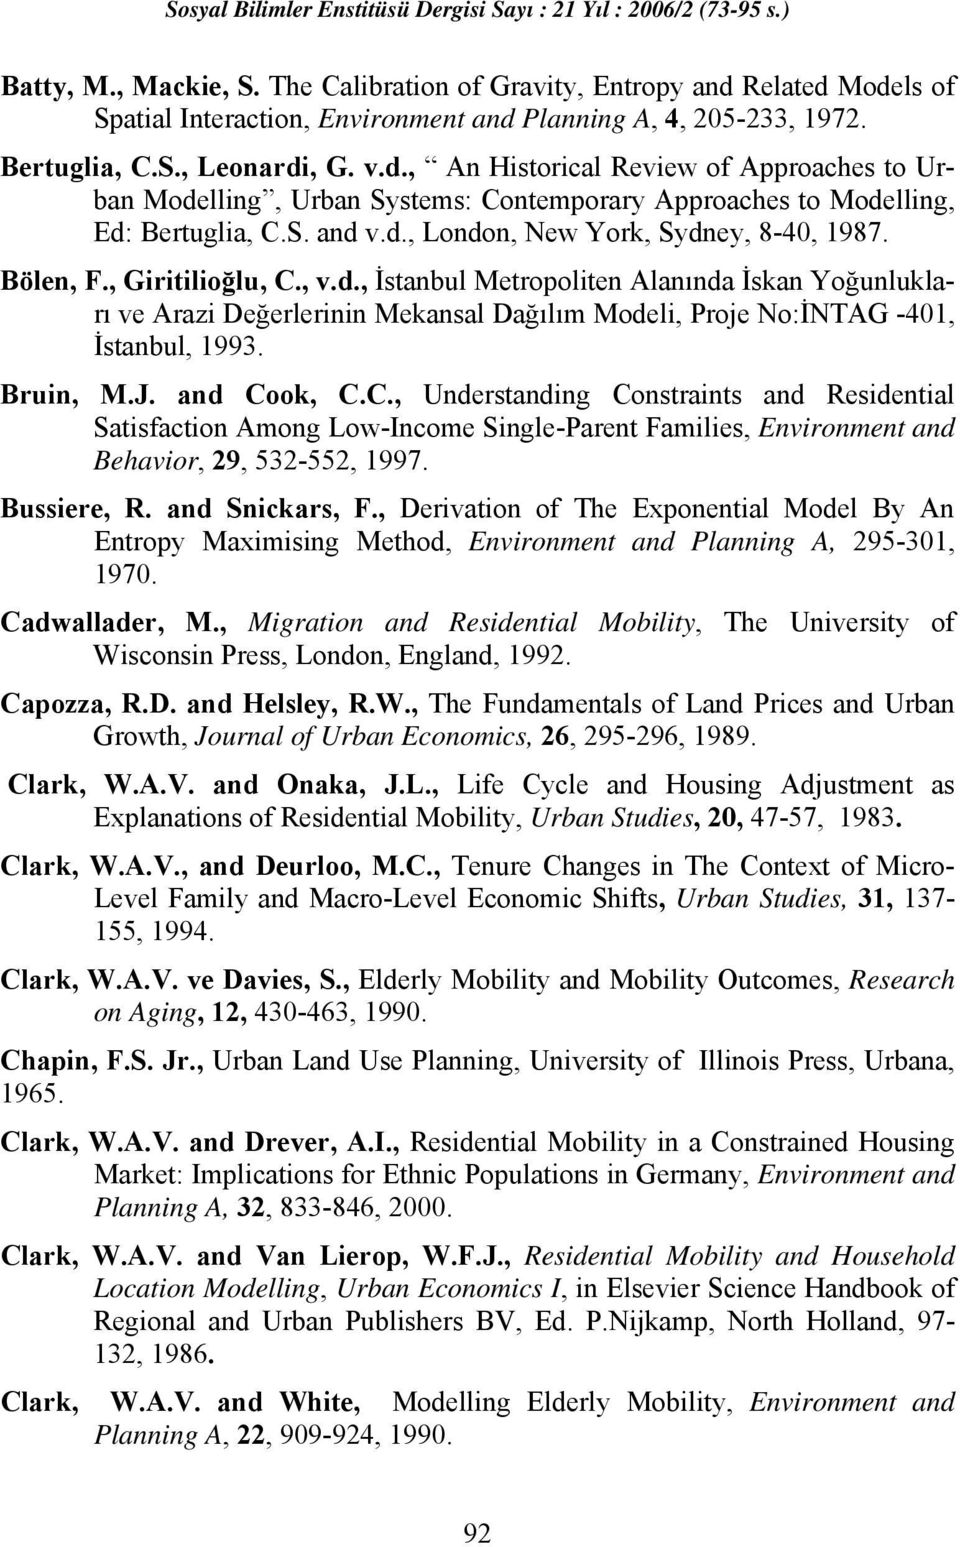 Bruin, M.J. and Cook, C.C., Understanding Constraints and Residential Satisfaction Among Low-Income Single-Parent Families, Environment and Behavior, 29, 532-552, 1997. Bussiere, R. and Snickars, F.